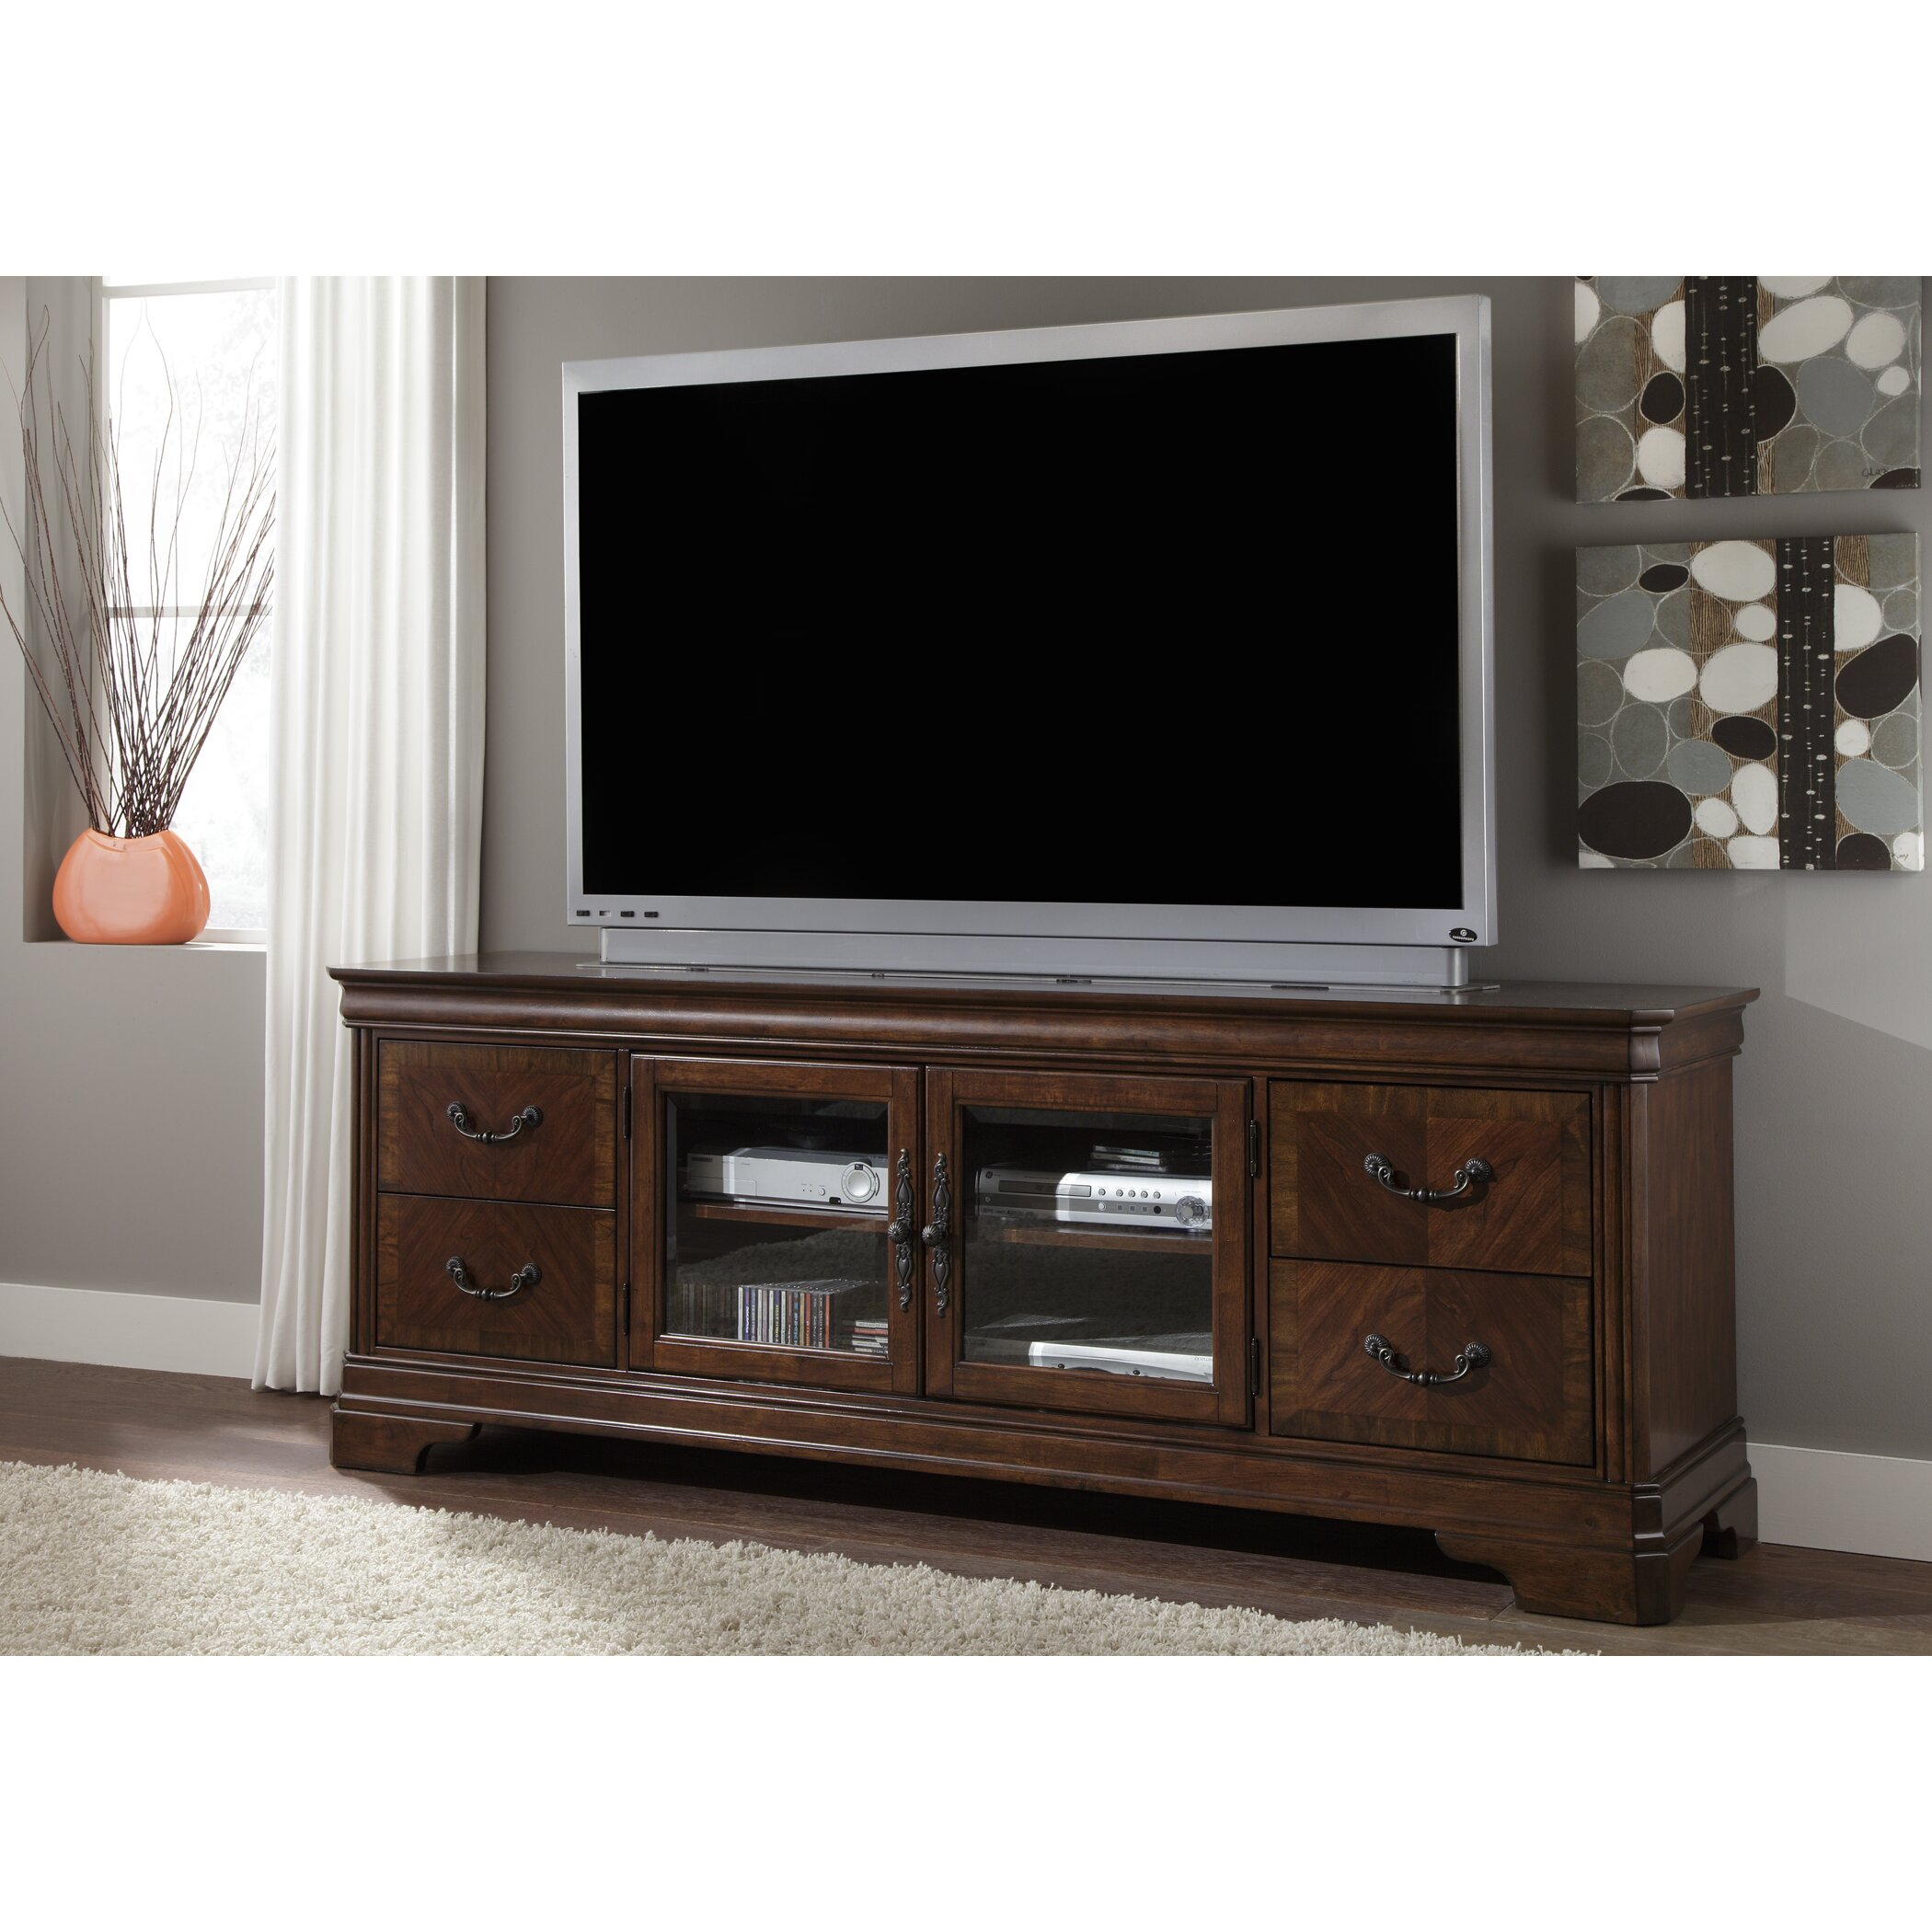 Rosalind Wheeler Ruppert Tv Stand Reviews Wayfair